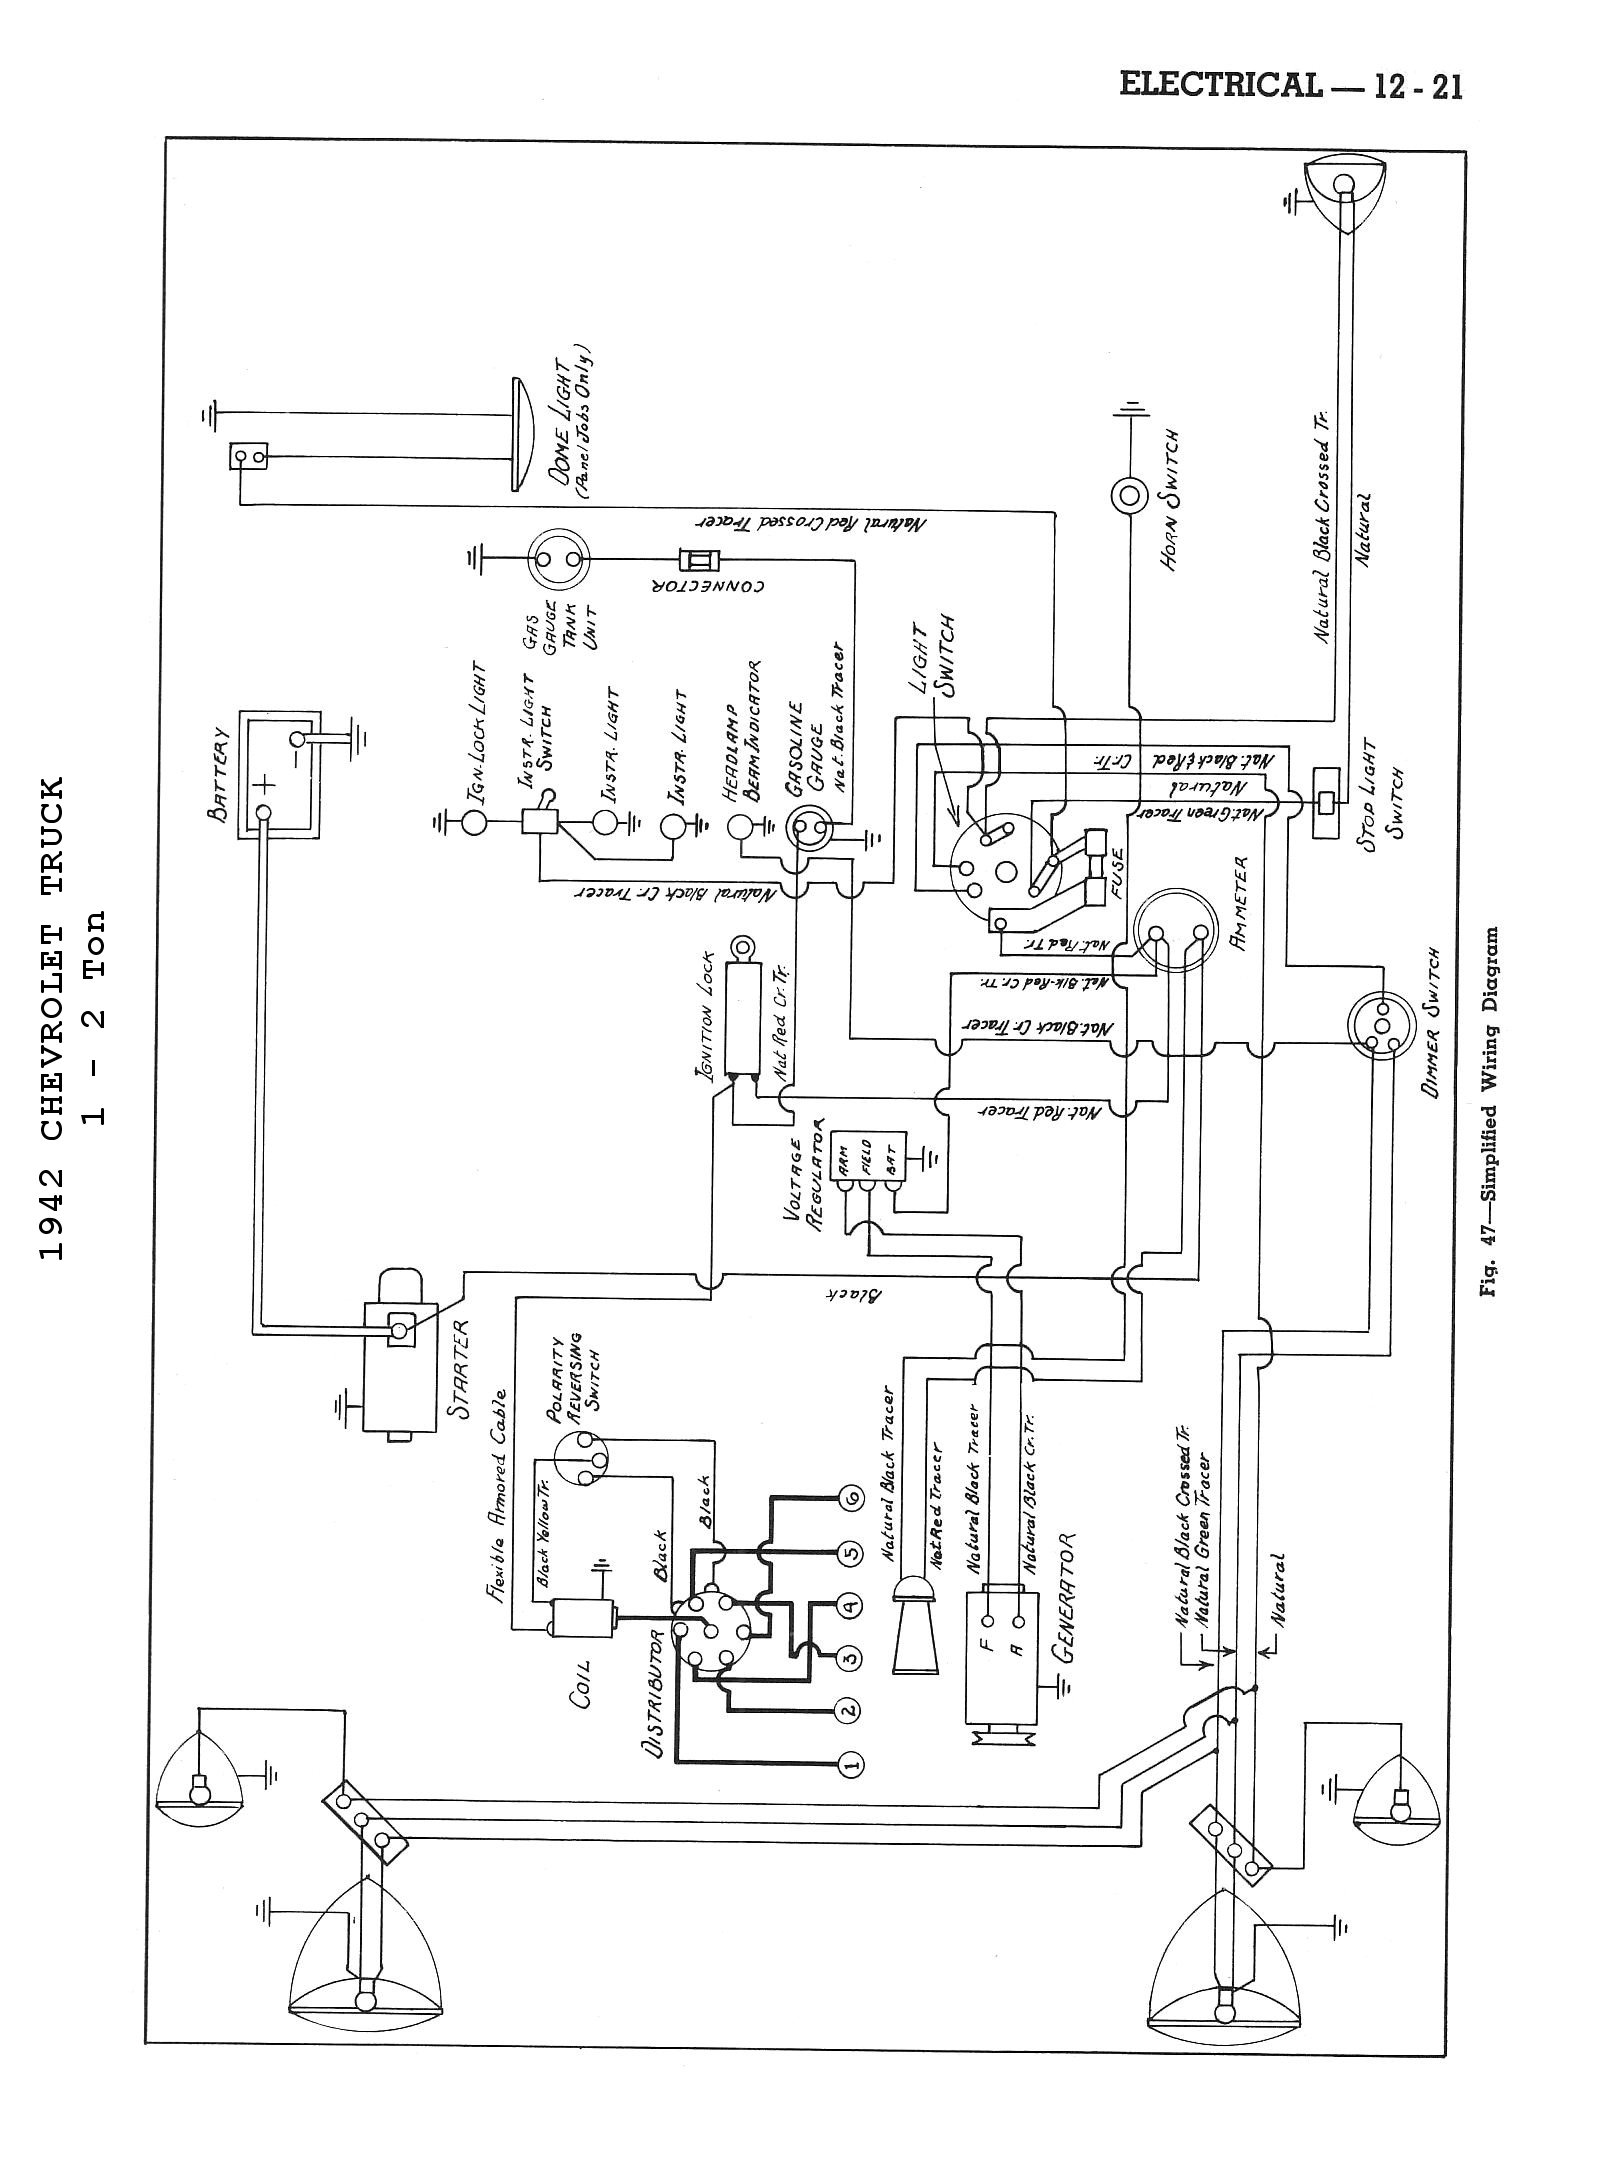 42cm4x2t1221 chevy wiring diagrams Basic Turn Signal Wiring Diagram at edmiracle.co